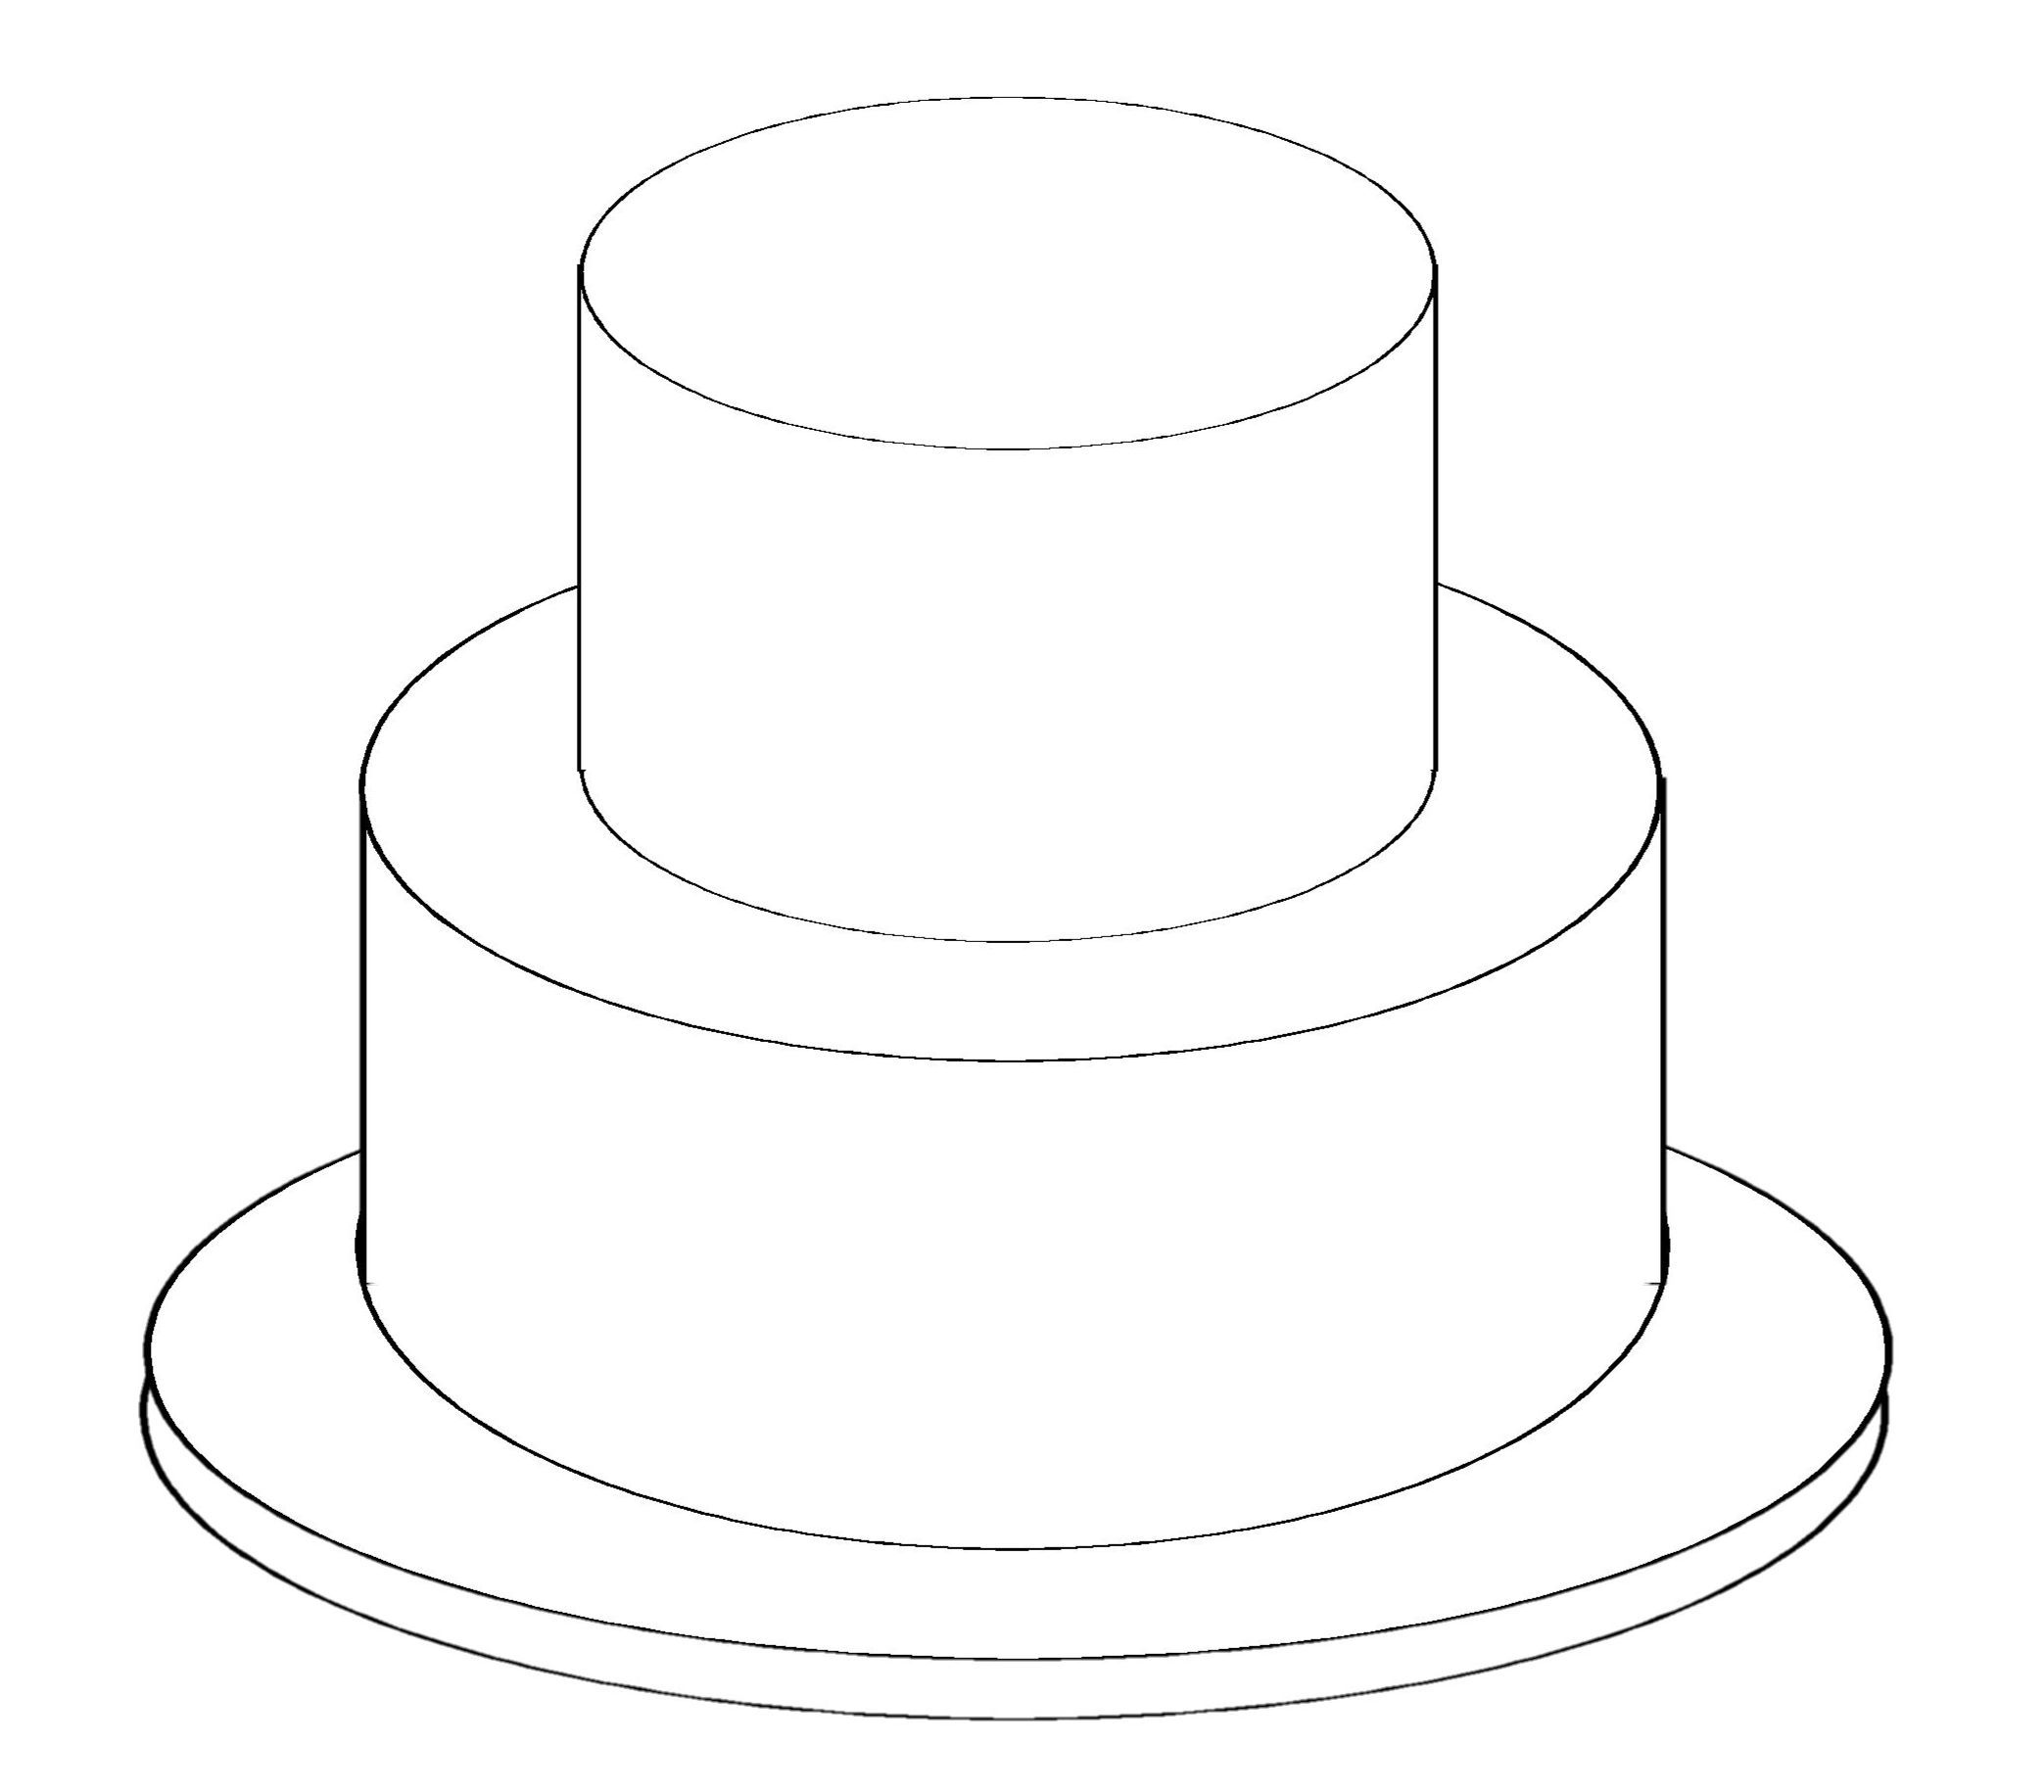 number 3 cake template - round cake baking and serving guides this link tells you